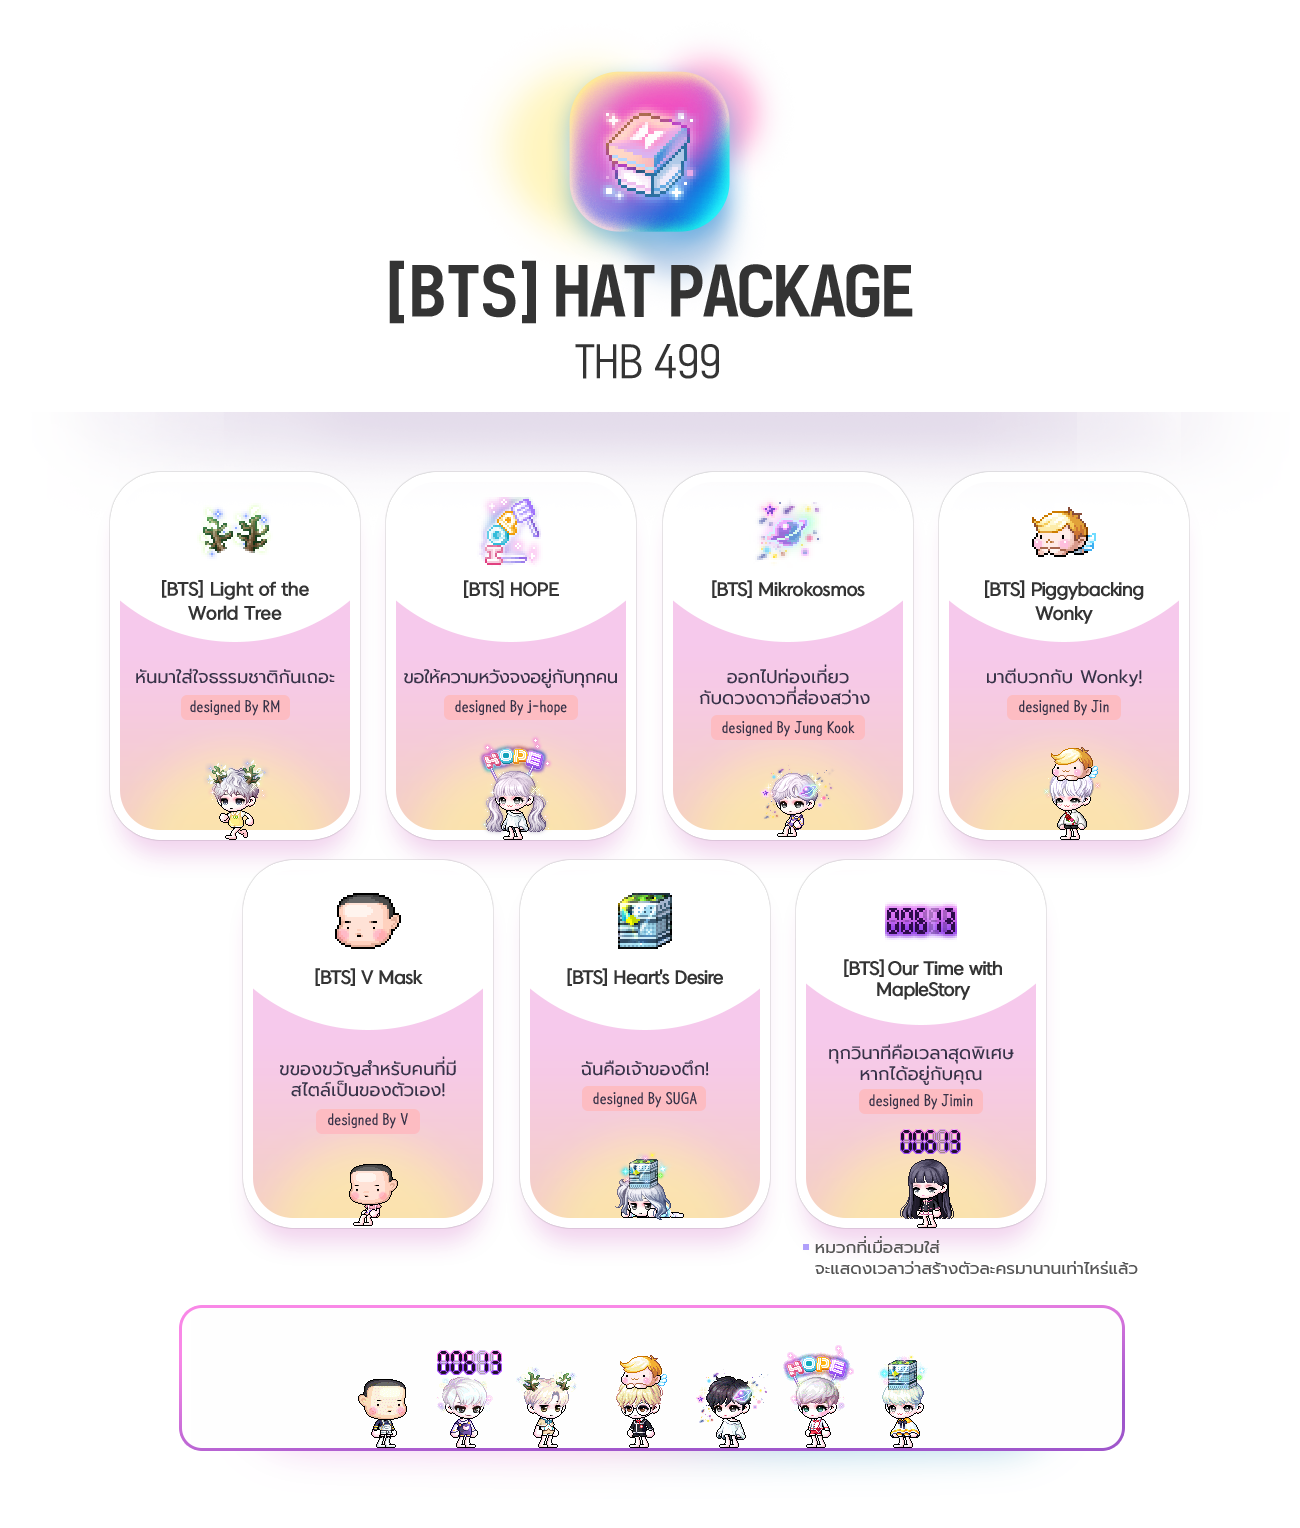 [BTS] Hat Package THB 499